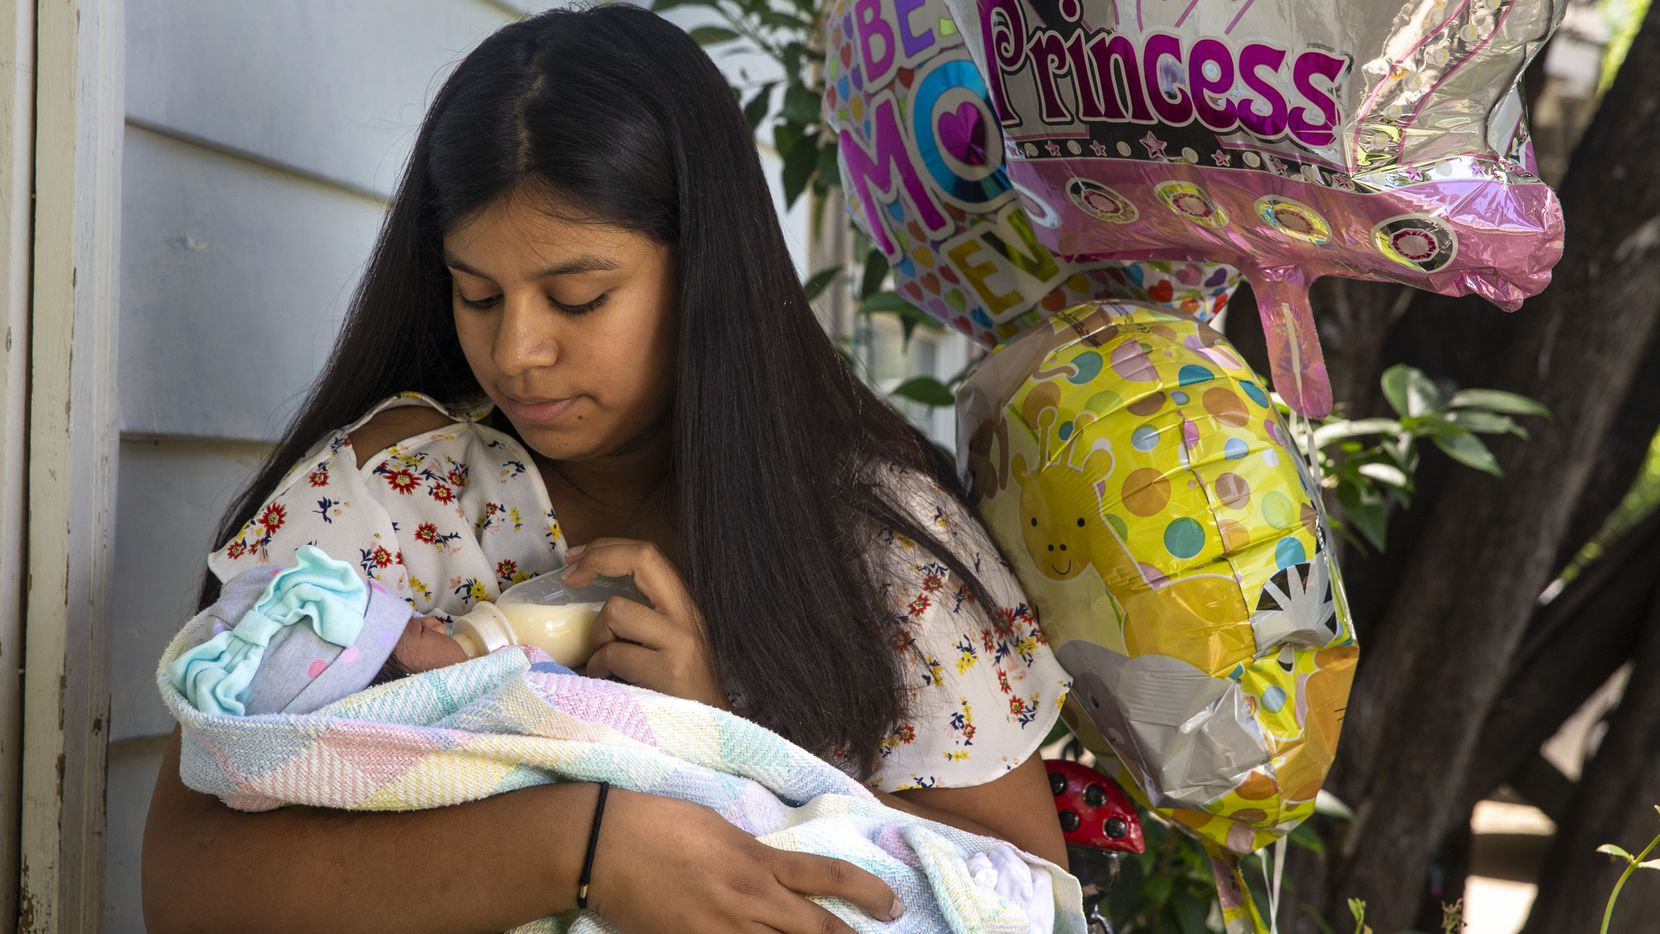 "Jocelyne Tapia holds her 8-day-old newborn, Jalees, during a portrait session at her home in West Oak Cliff in Dallas on Wednesday, May 6, 2020. Tapia gave birth to Jalees in the middle of the COVID-19 pandemic. ""I was scared, and I didn't know what was going to happen,"" Tapia said, but added that having a baby in the midst of the pandemic has an upside. ""Even though our lives are scary, [Jalees] brought joy into our lives."" (Lynda M. Gonzalez/The Dallas Morning News)"